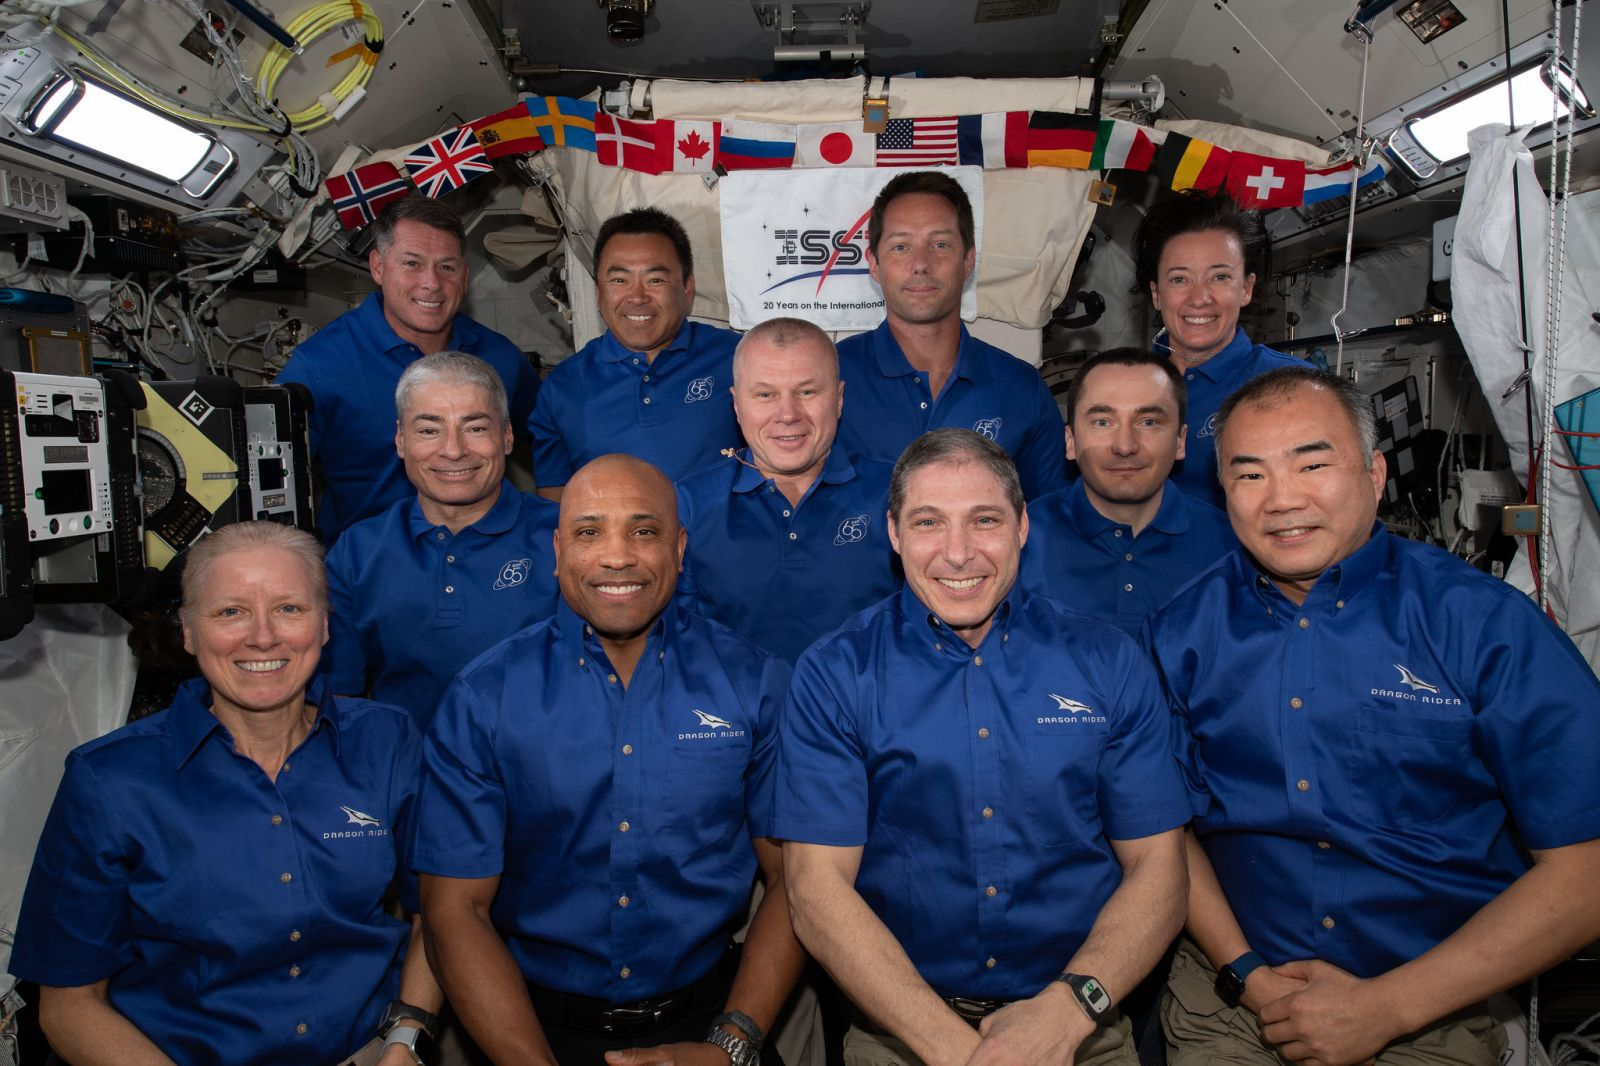 The 11 people aboard the International Space Station between the arrival of Crew-2 Dragon and the departure of Crew-1 Dragon. The Crew-1 astronauts are in the front row. Credit: NASA